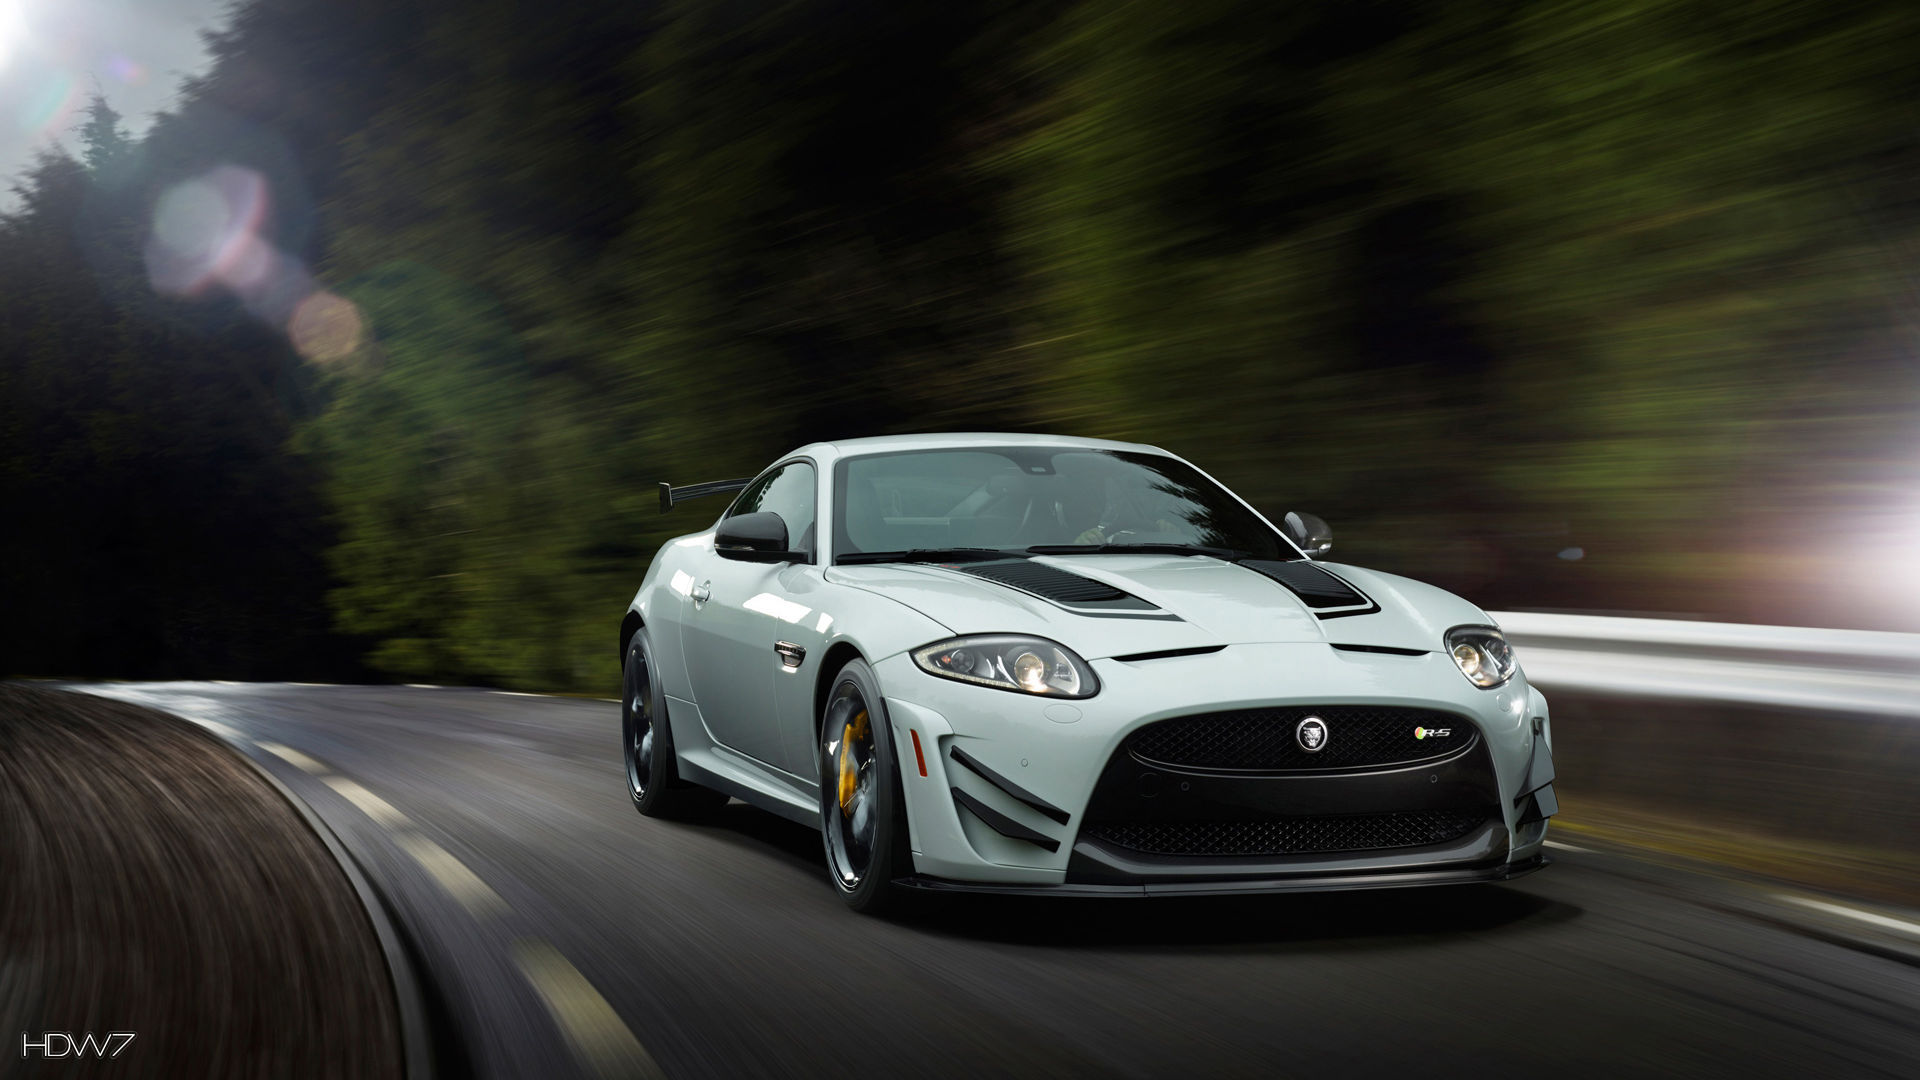 jaguar xkr s gt 2013 car hd wallpaper